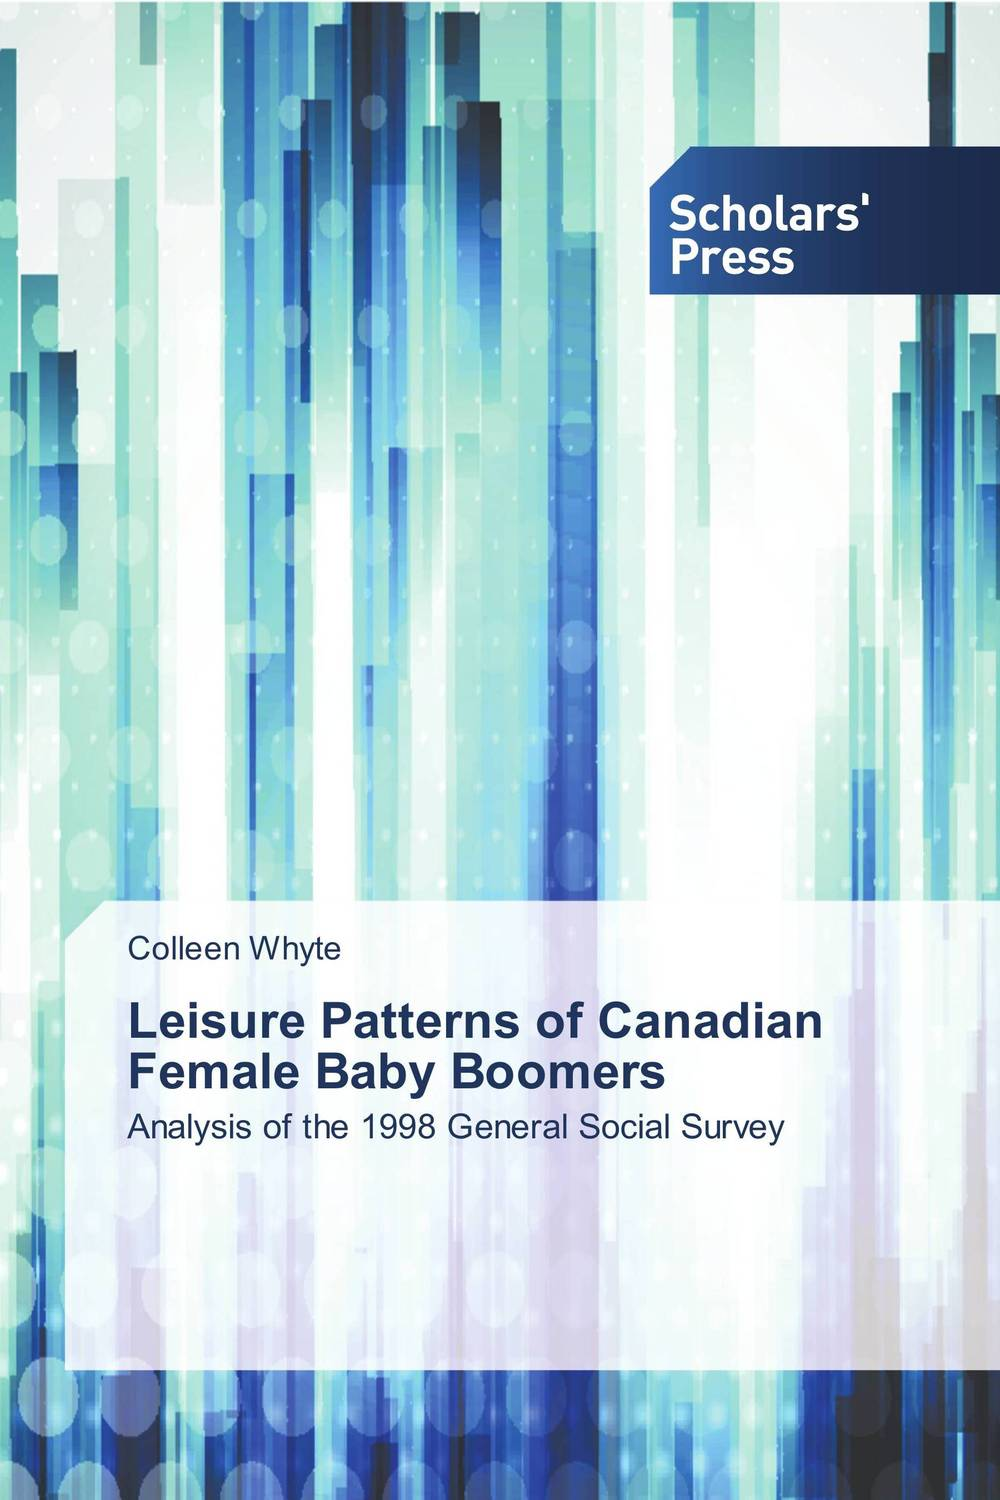 Leisure Patterns of Canadian Female Baby Boomers